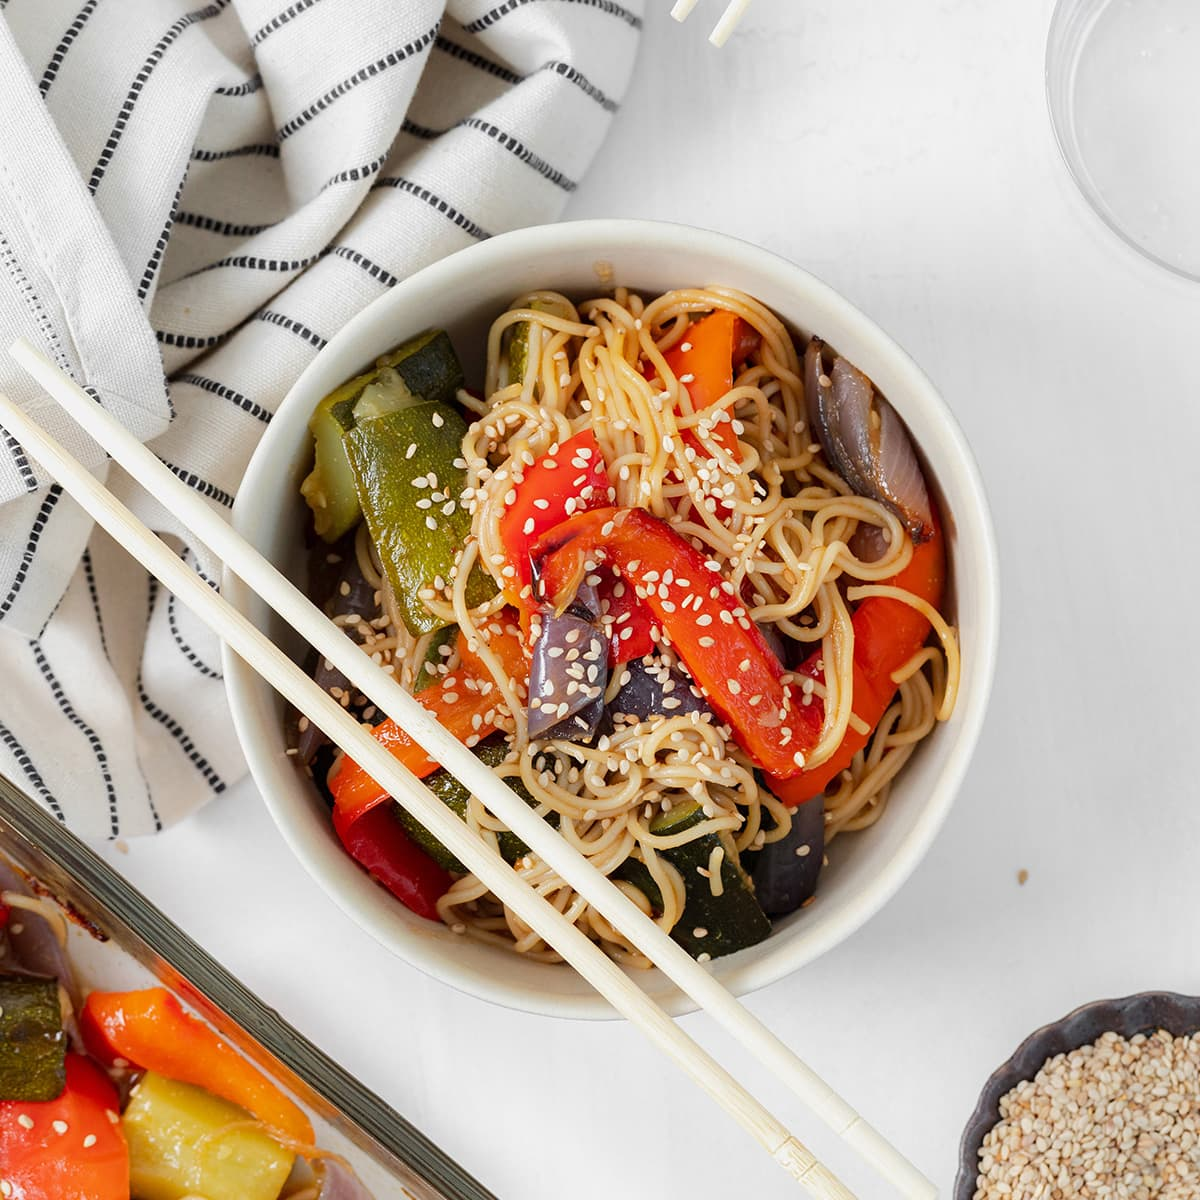 Gluten-free ramen noodle stir fry in a white bowl with chopsticks resting on the left side of the bowl. striped white and black napkin in the top left corner.